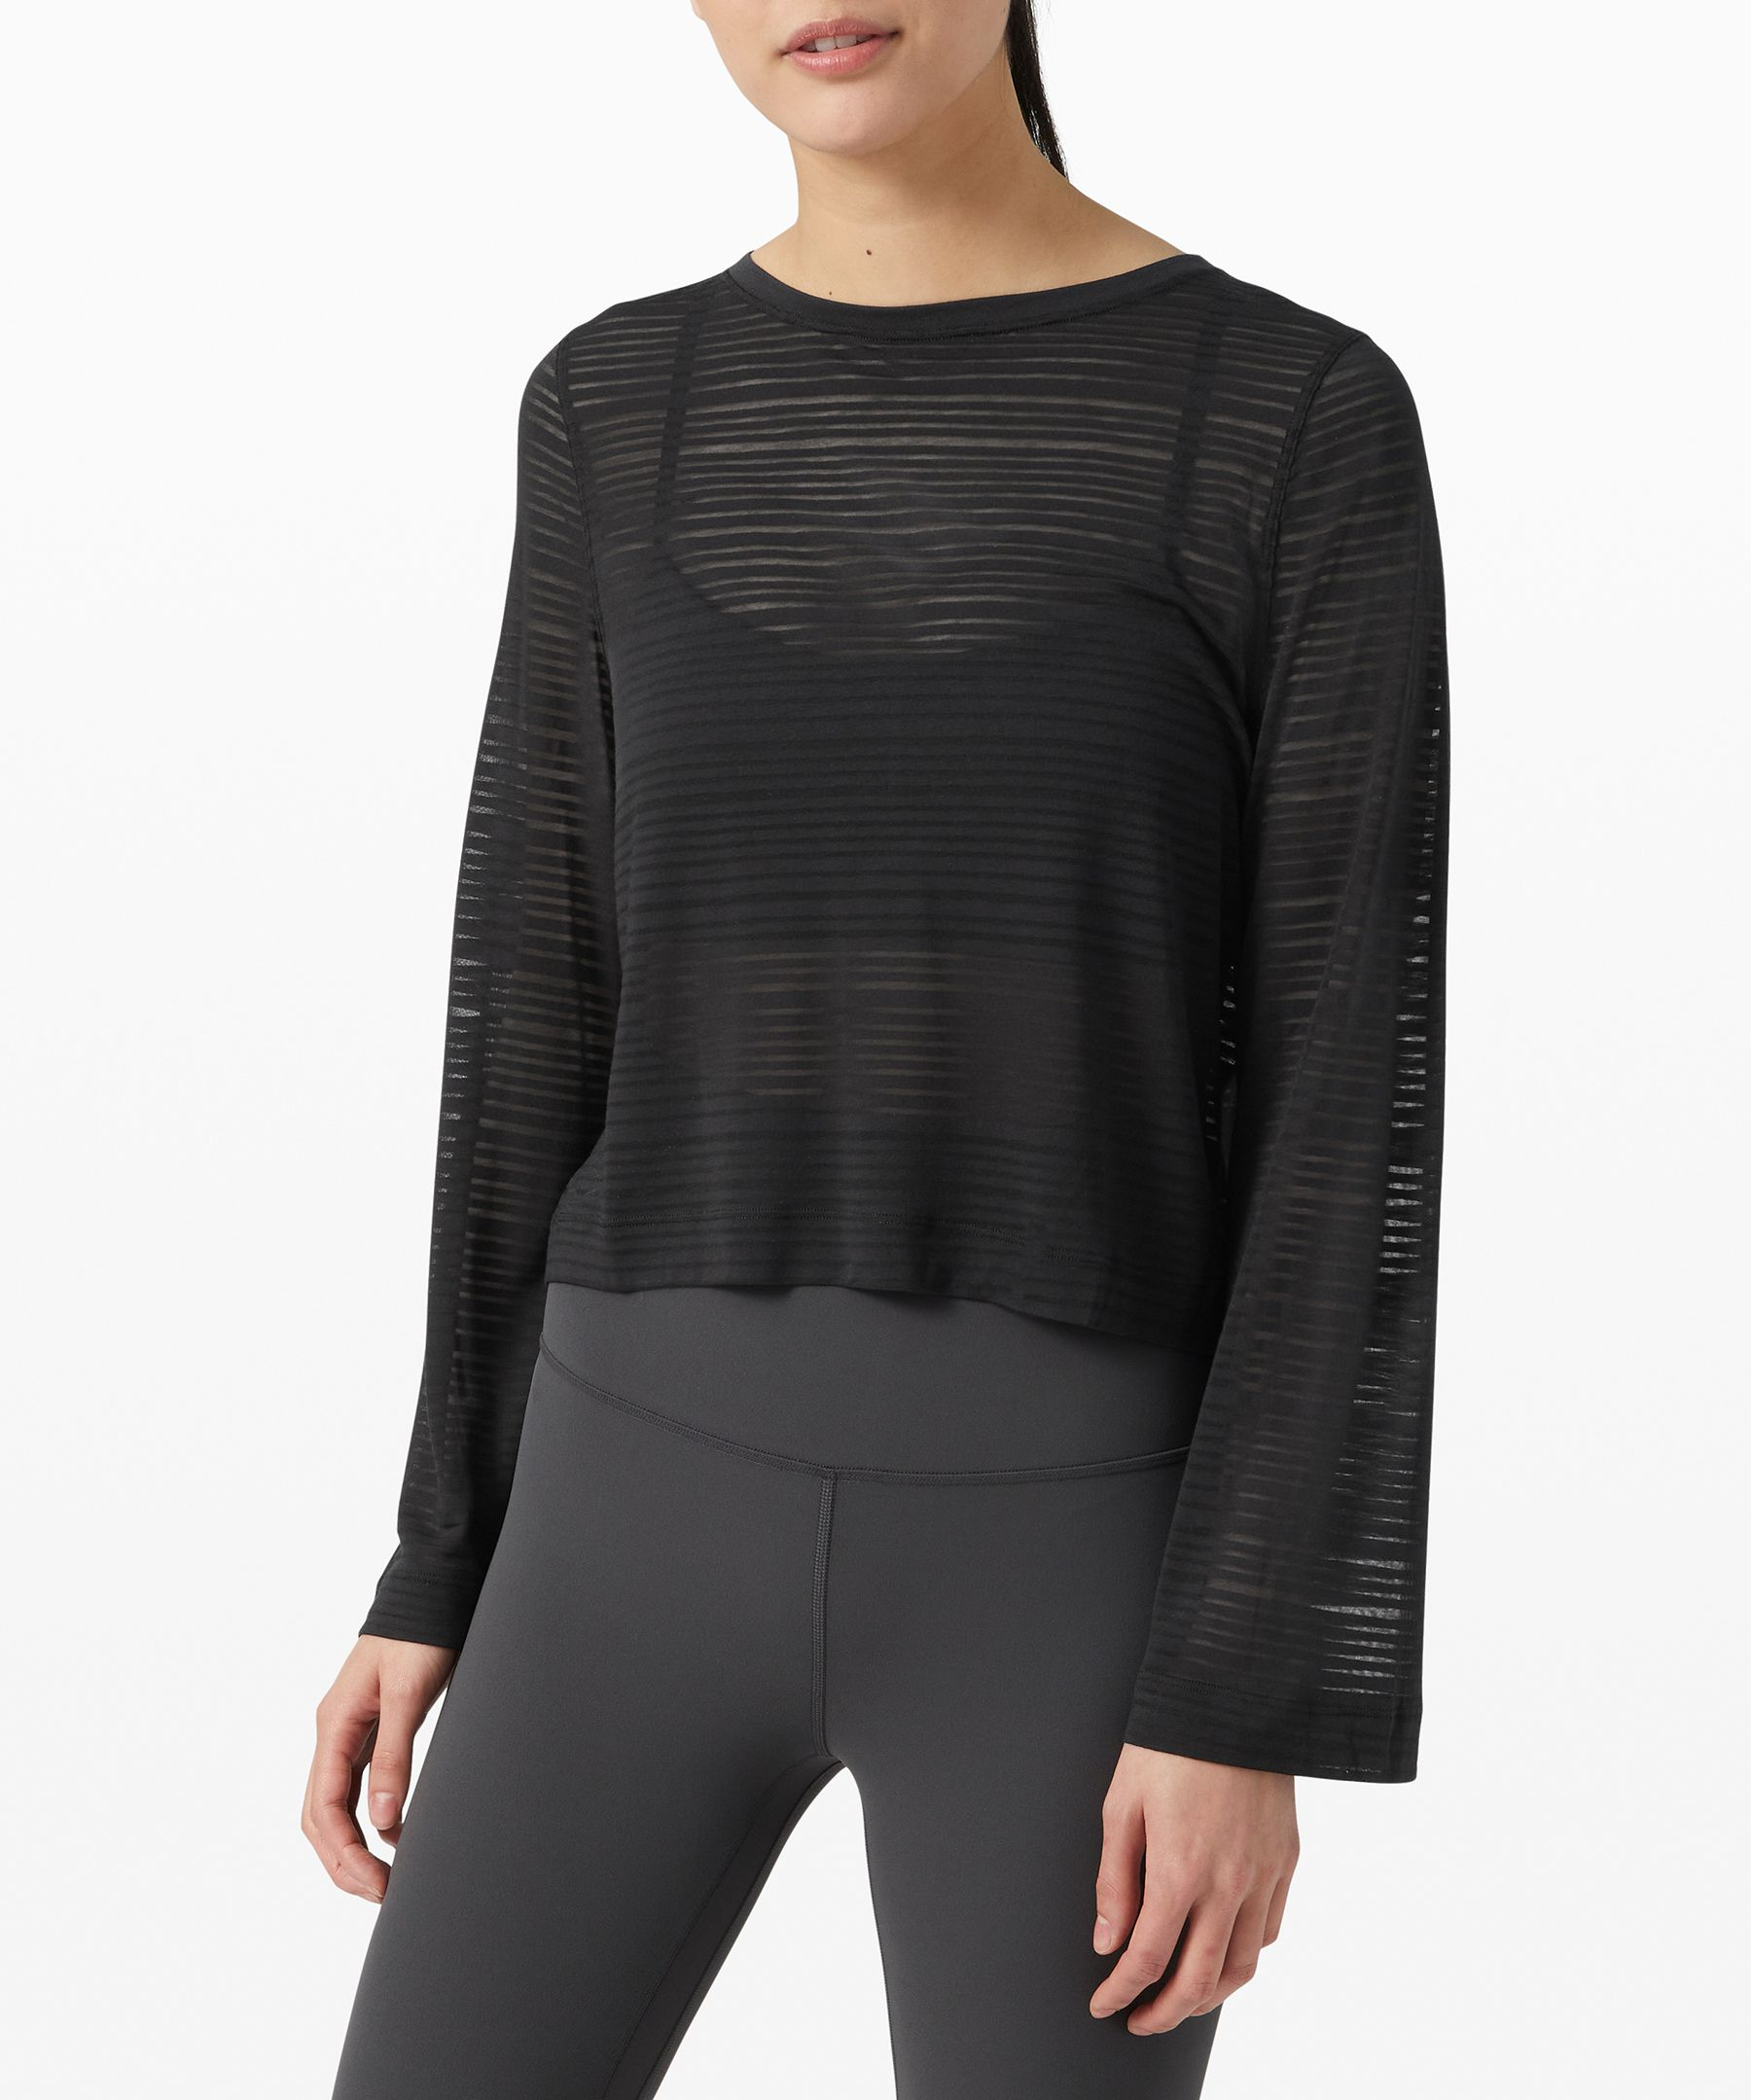 Clear your mind and focus on  the present. This lightweight  long sleeve has a breathable  stripe pattern integrated into  the fabric for slightly sheer,  lightweight coverage.